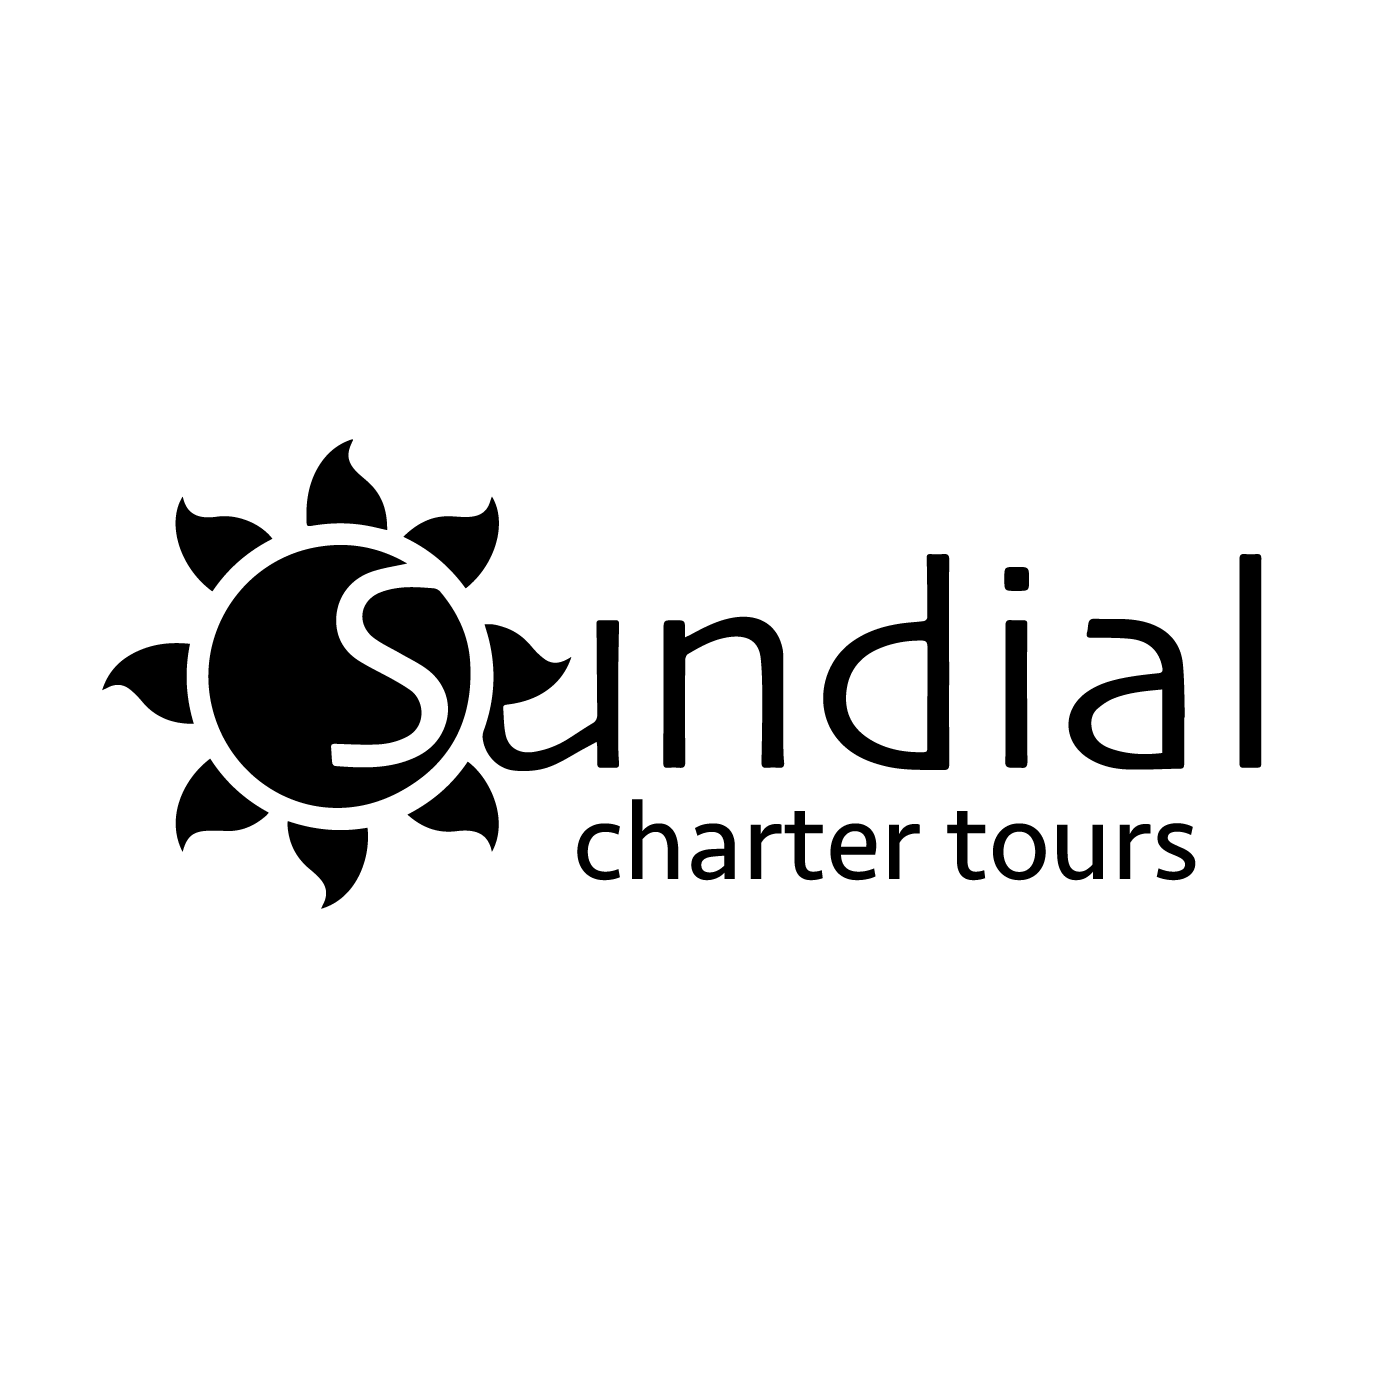 Sundial 2.png